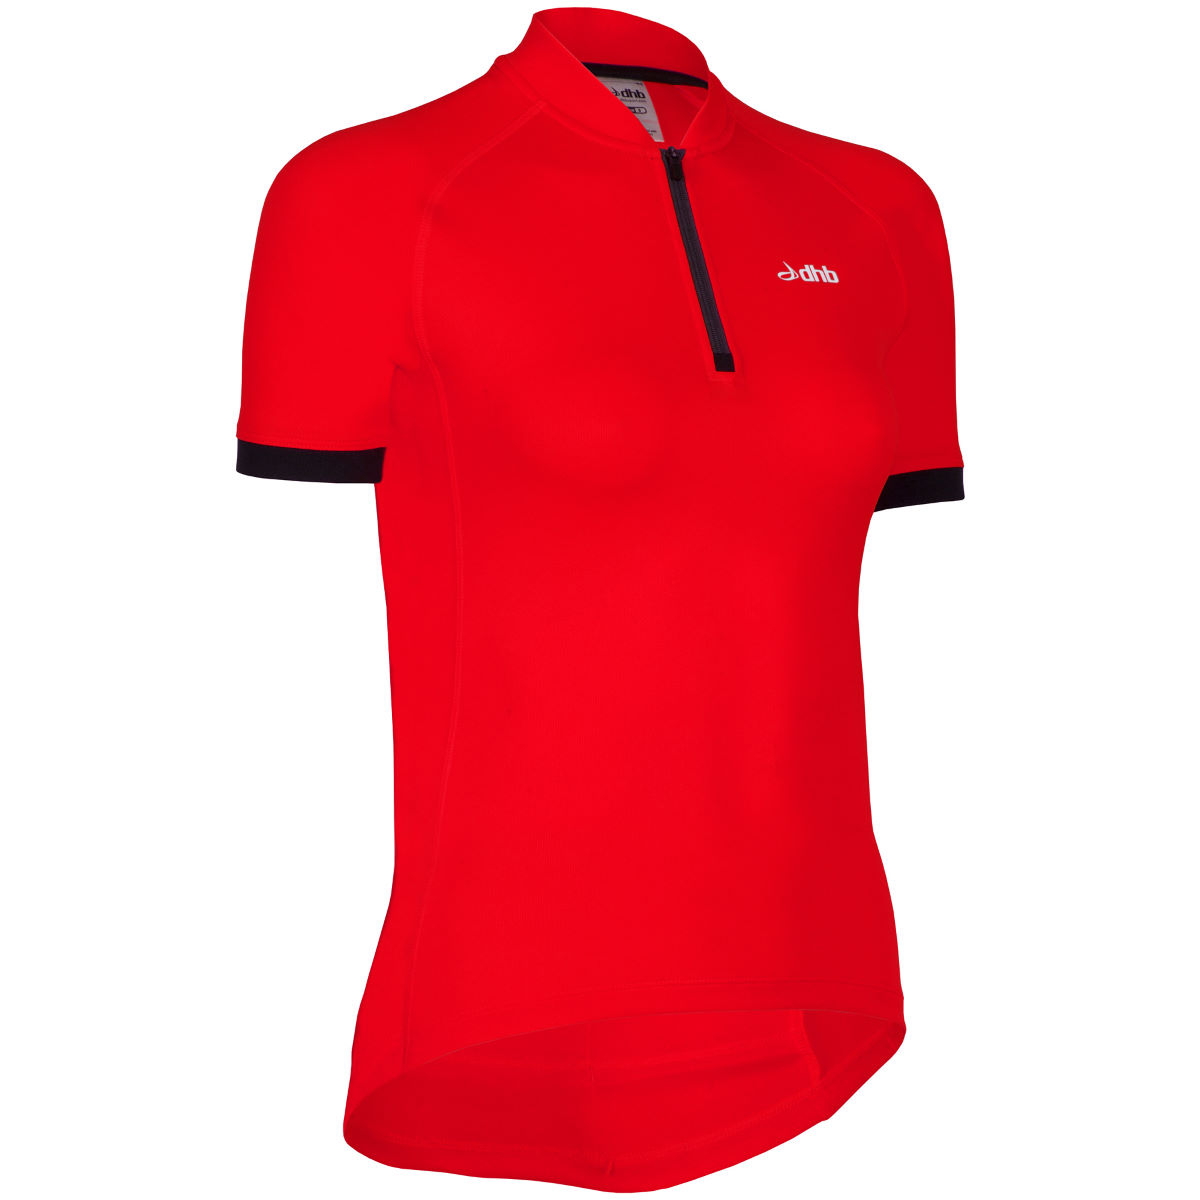 dhb Women's Active Short Sleeve Cycling Jersey